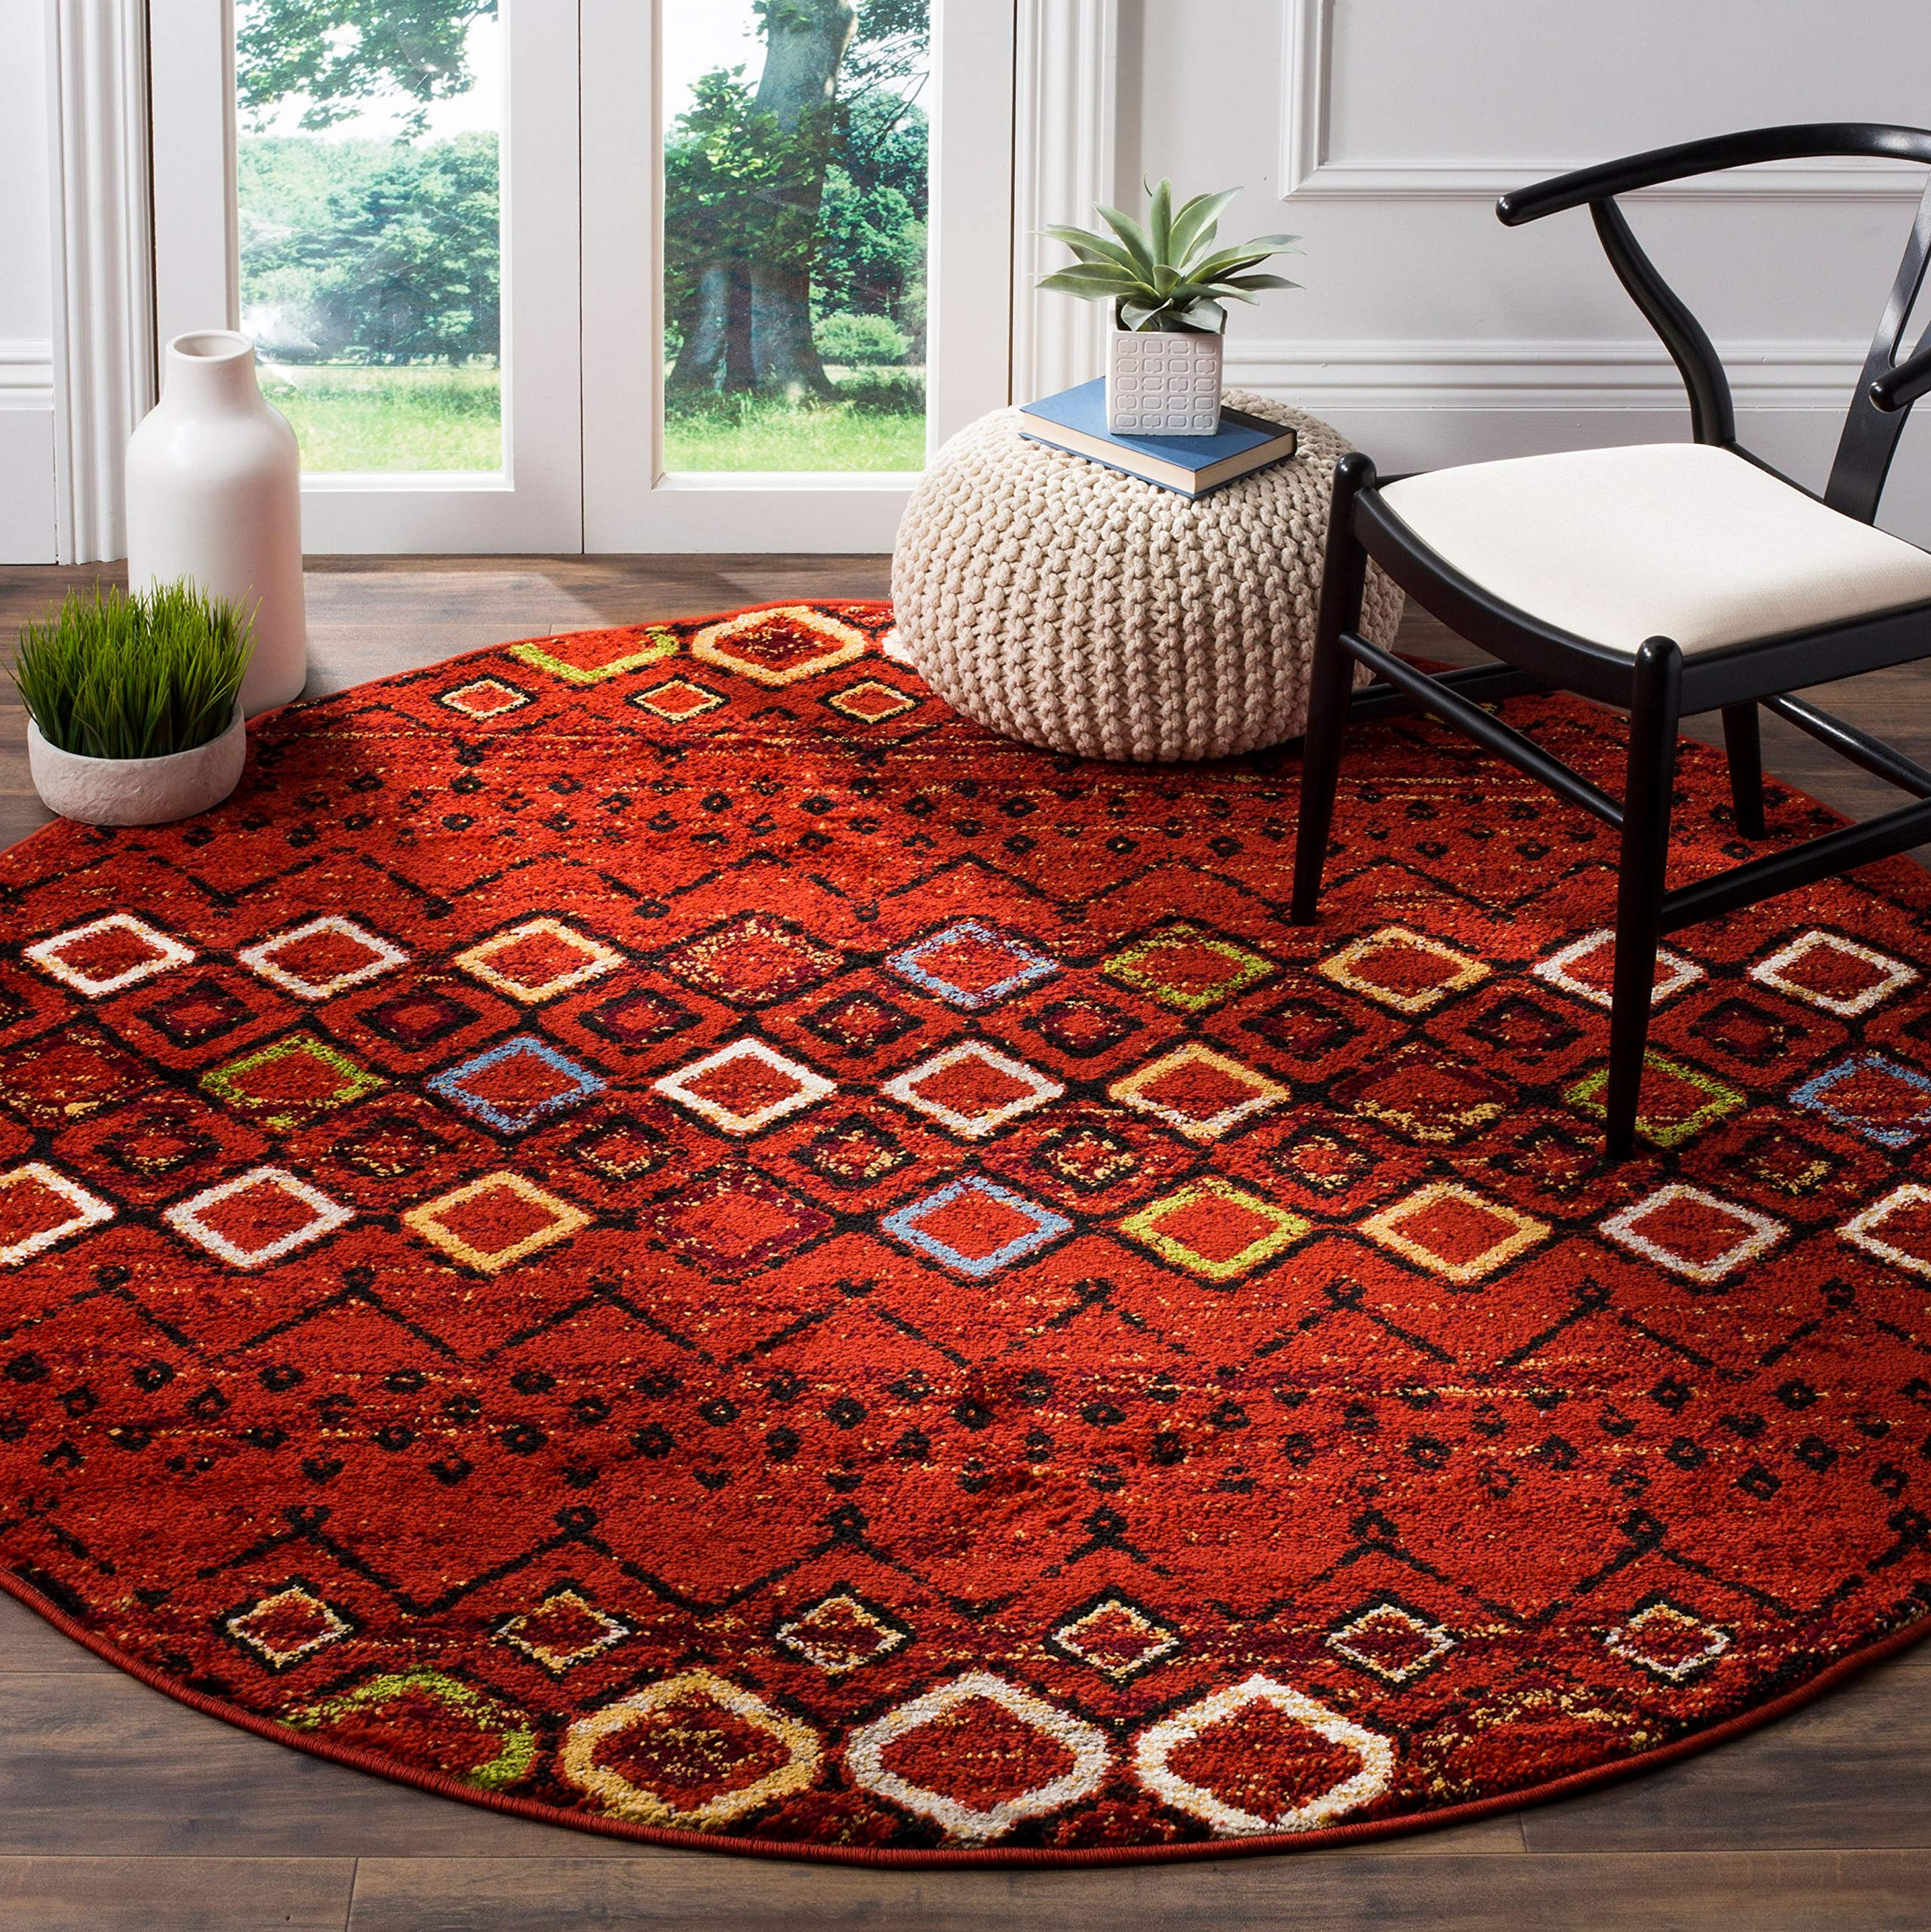 "Safavieh Amsterdam Collection AMS108D Area Rug, 5' 1"" Round, Terracotta/Multi"